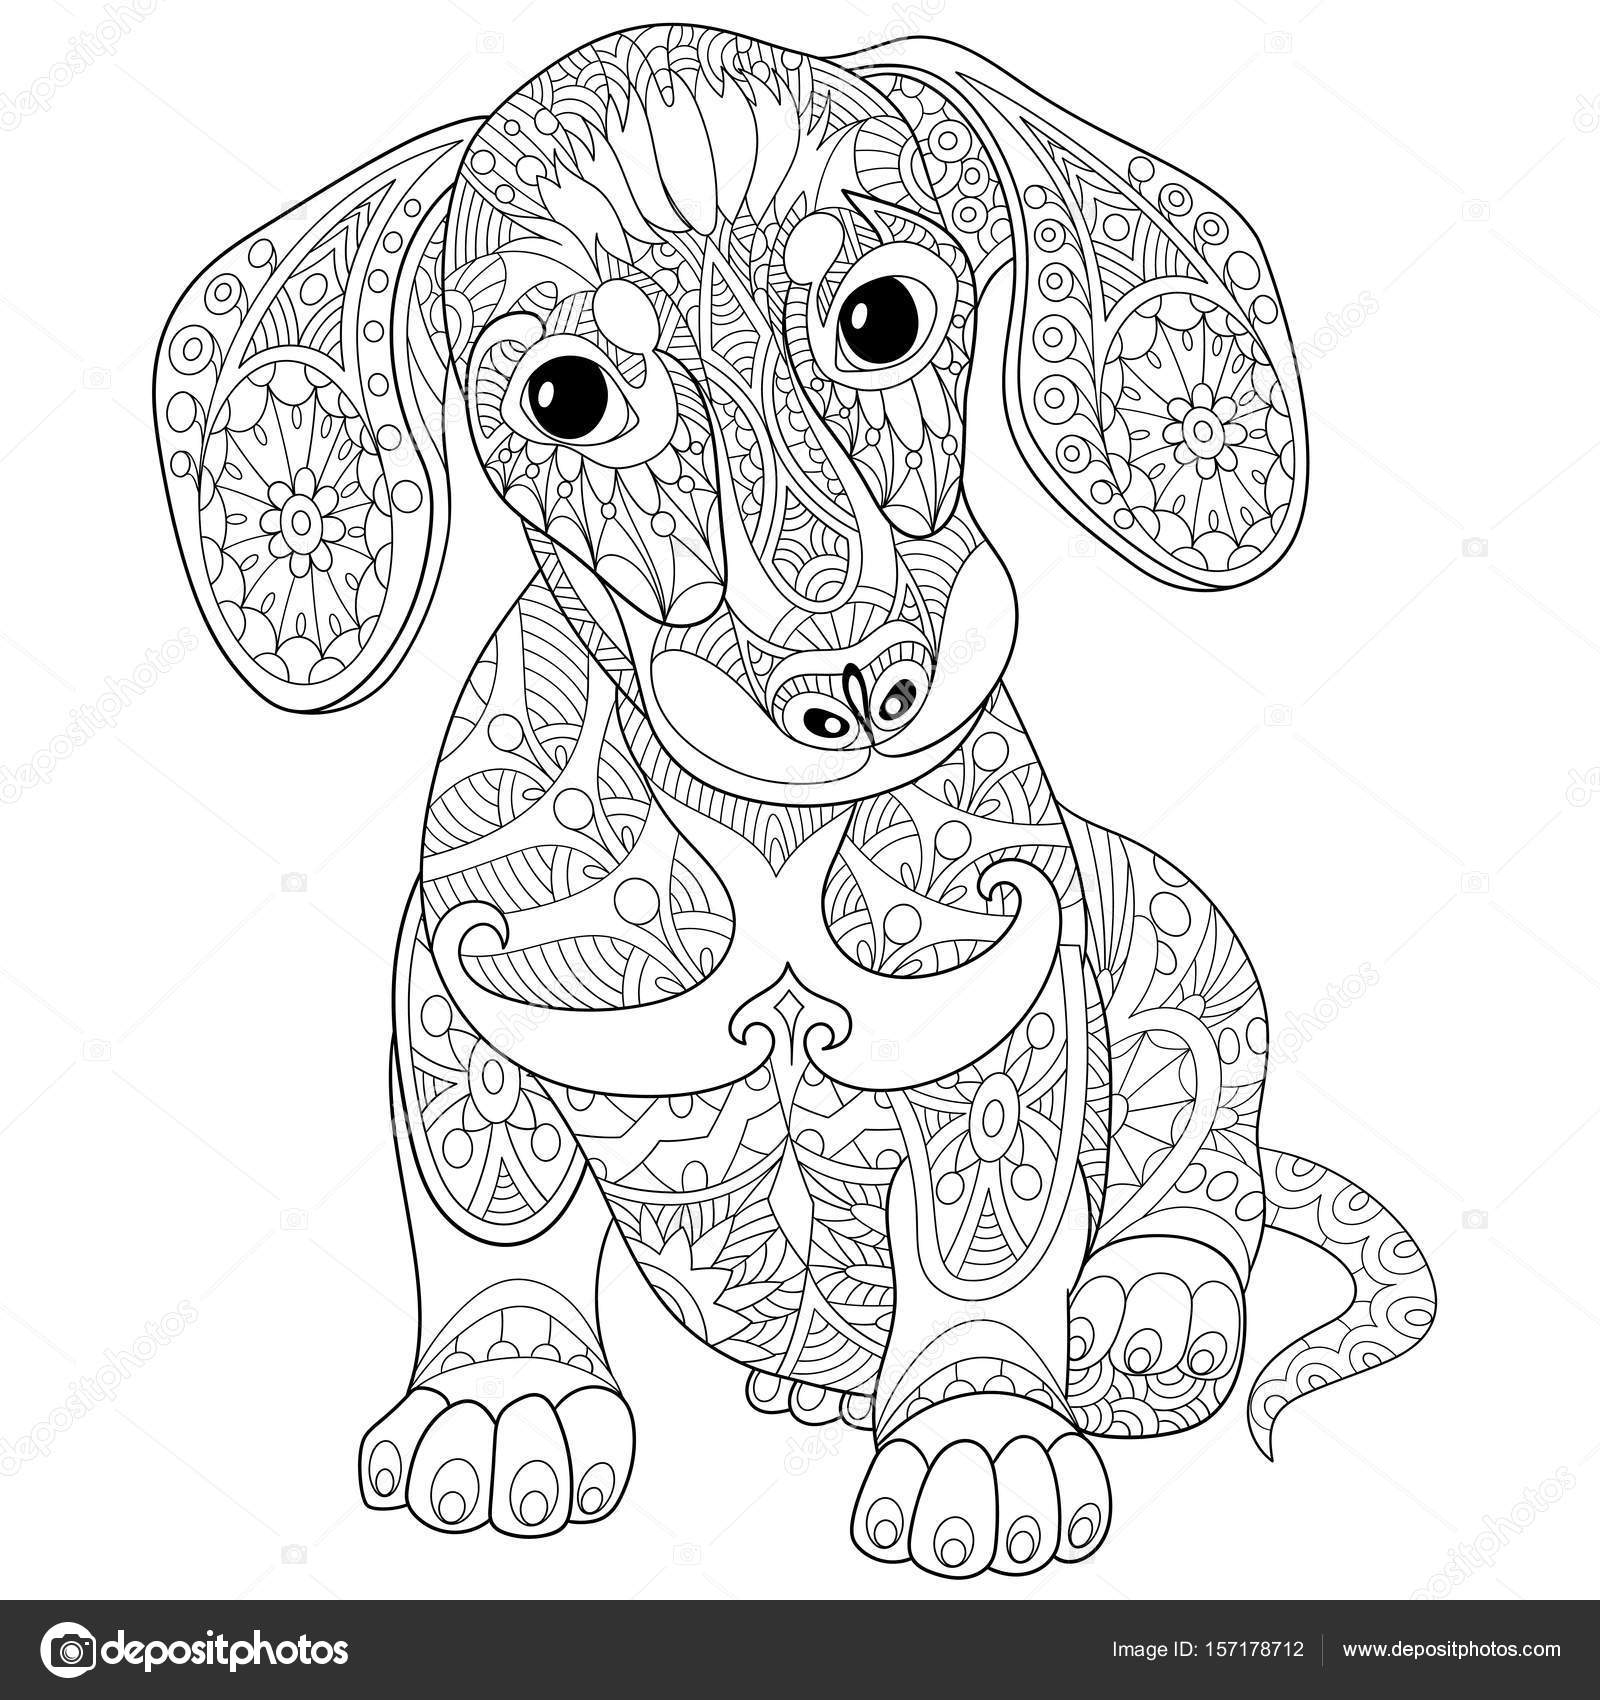 Zentangle gestileerde teckel puppy hondje stockvector - Dessin teckel ...